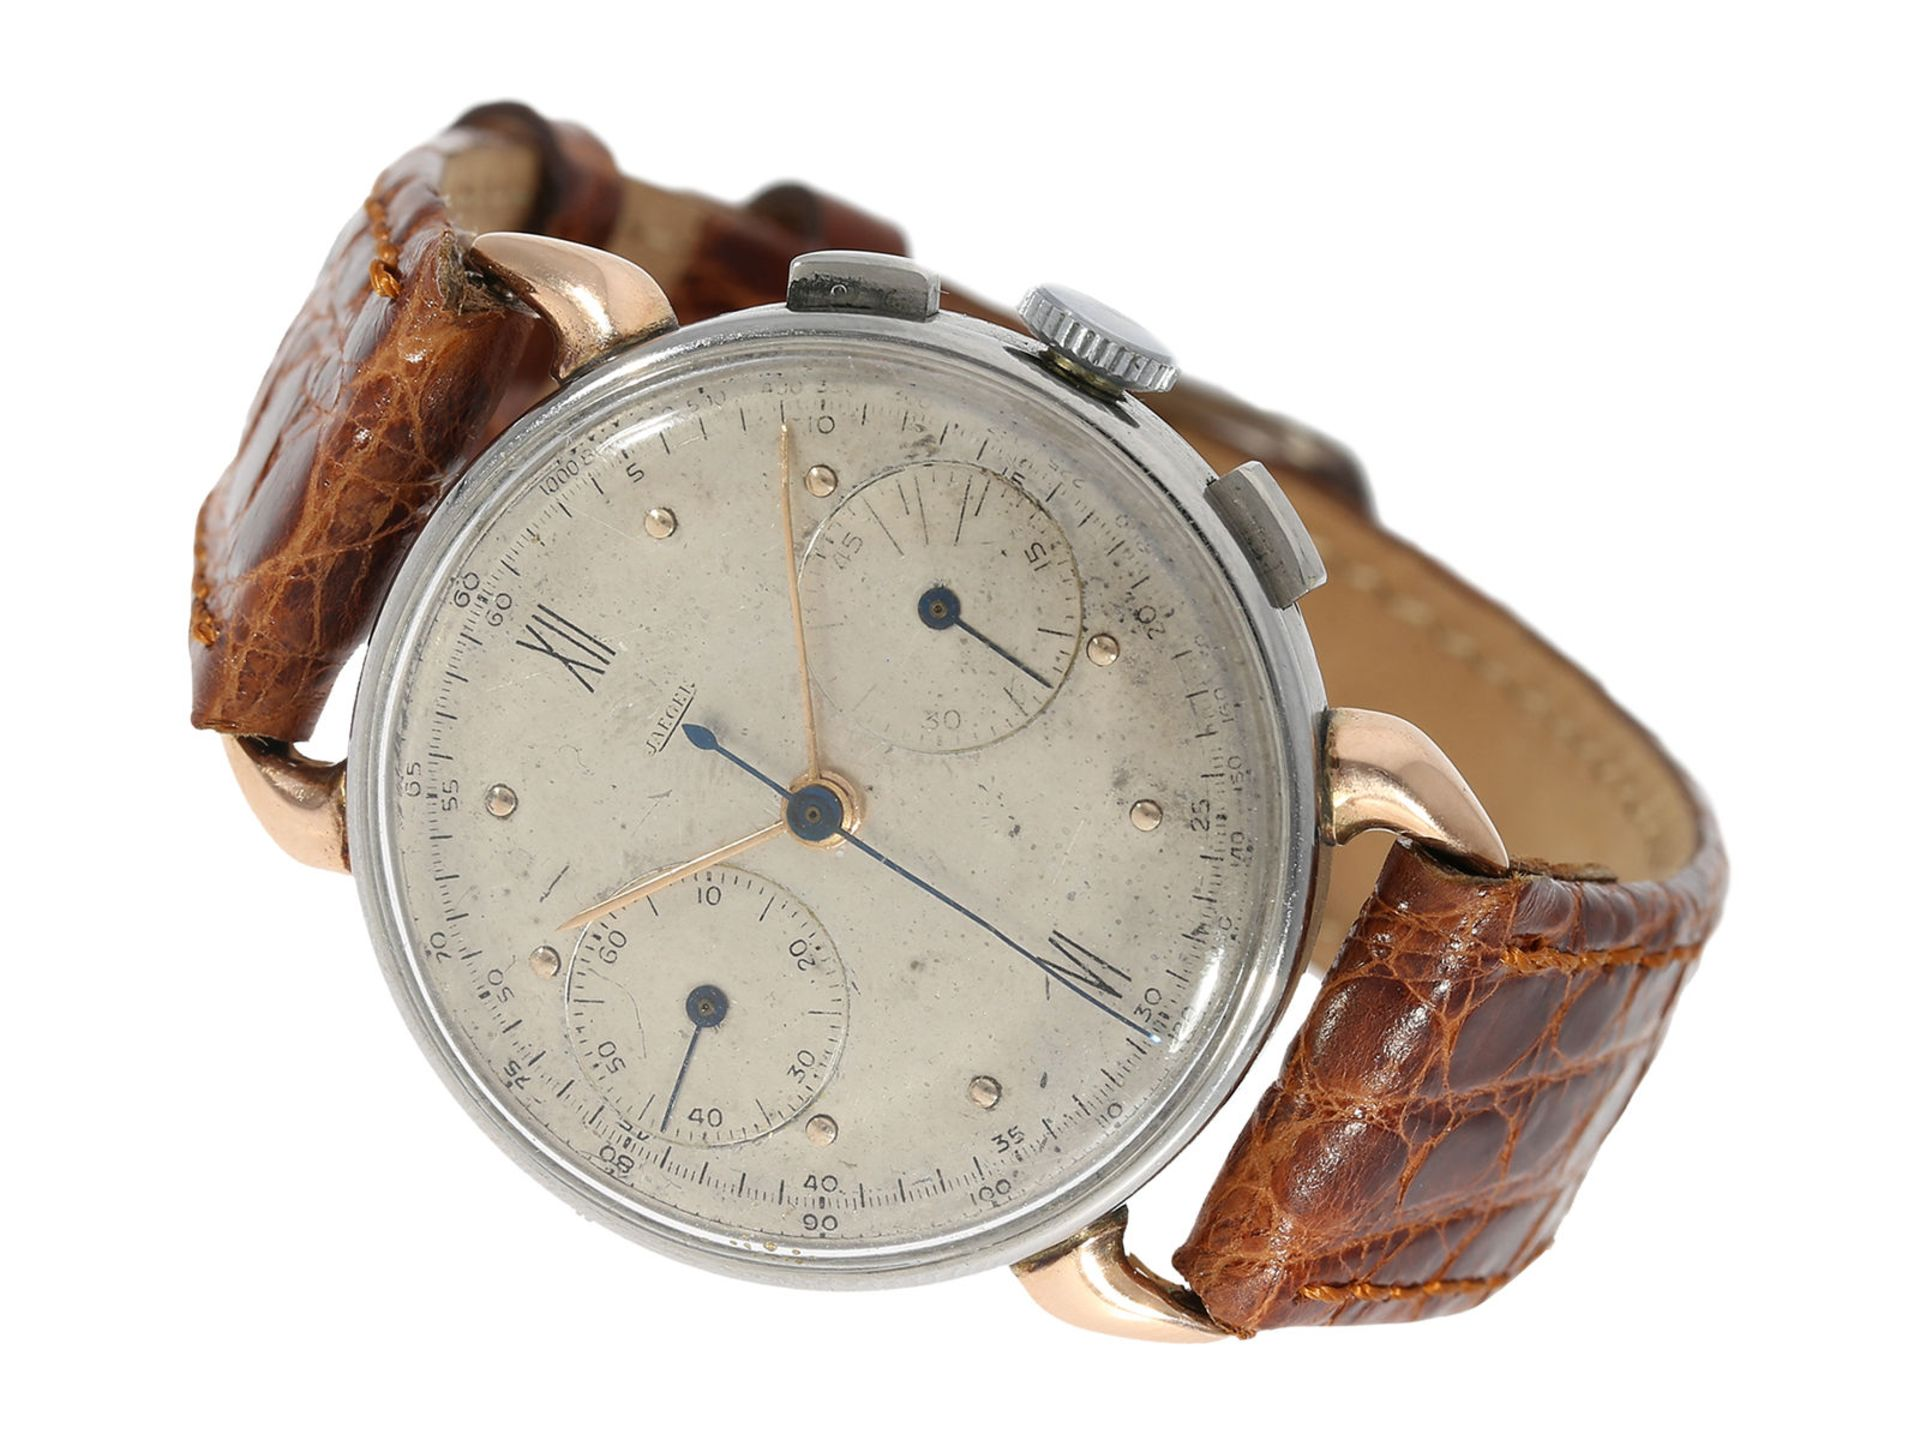 Wristwatch: very rare, early Jaeger chronograph in steel/ pink gold, Reference 22487, from the